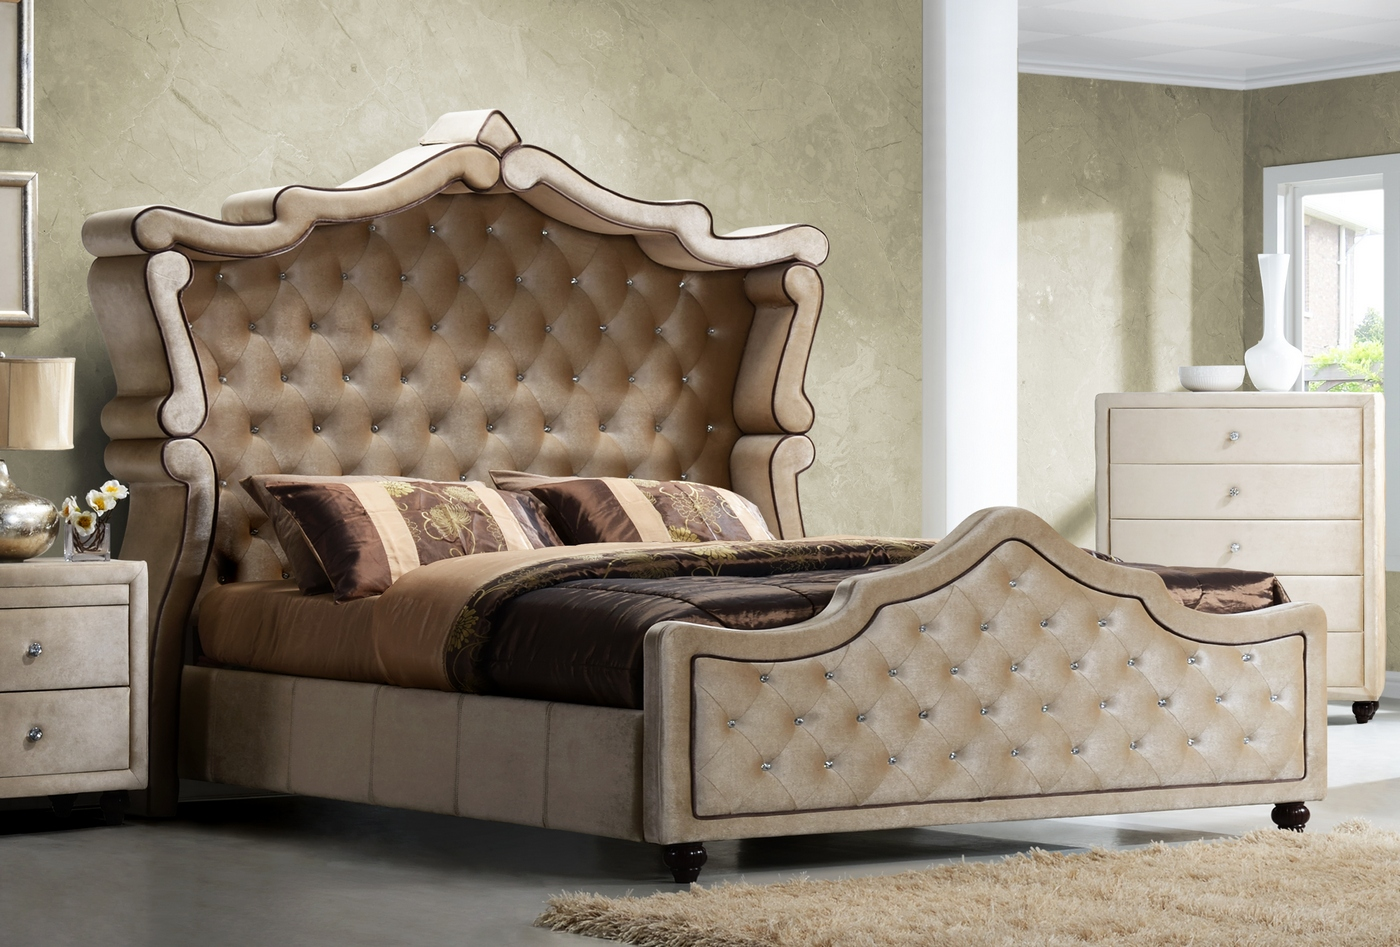 Tall Upholstered King Bed